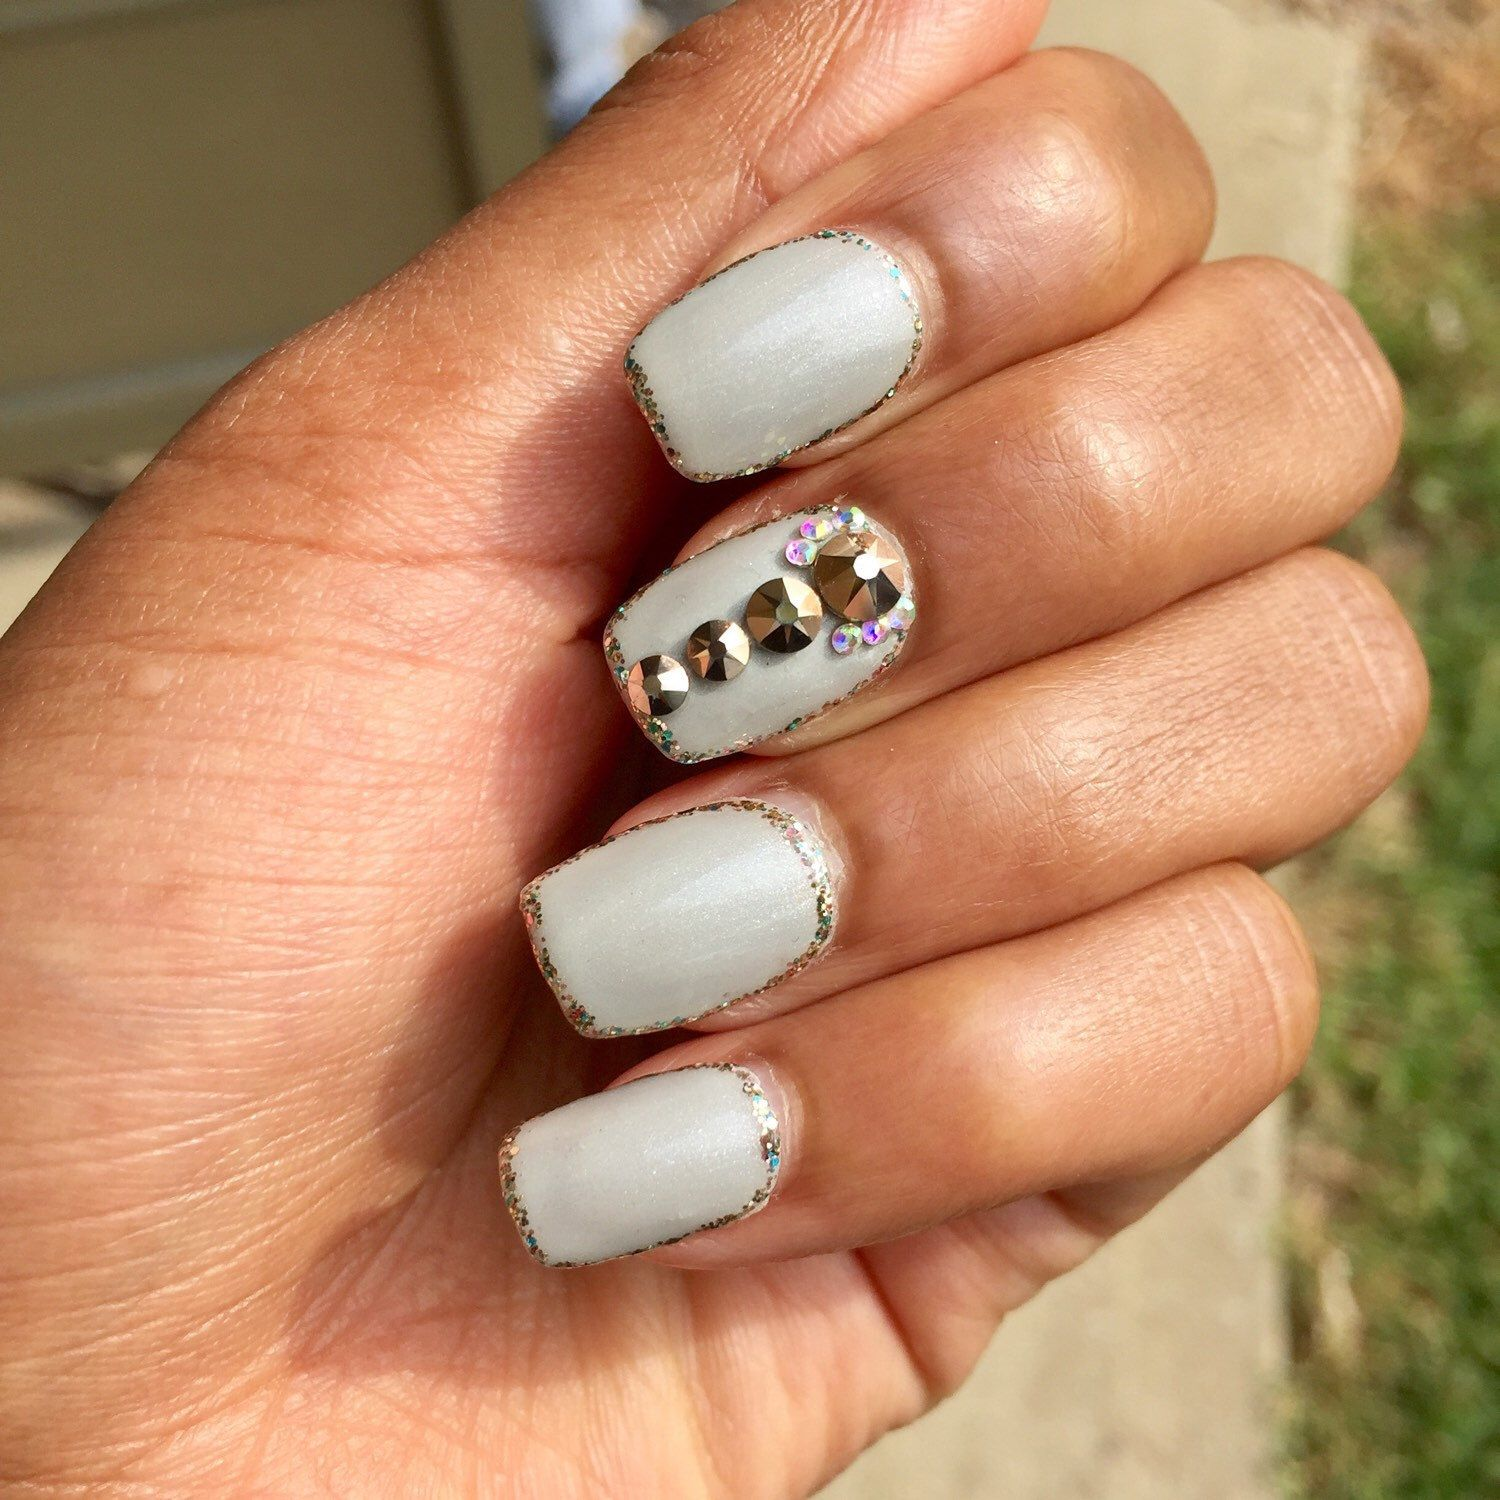 Simple & Sparkly | Press On Nails | Pinterest | Sallys beauty ...